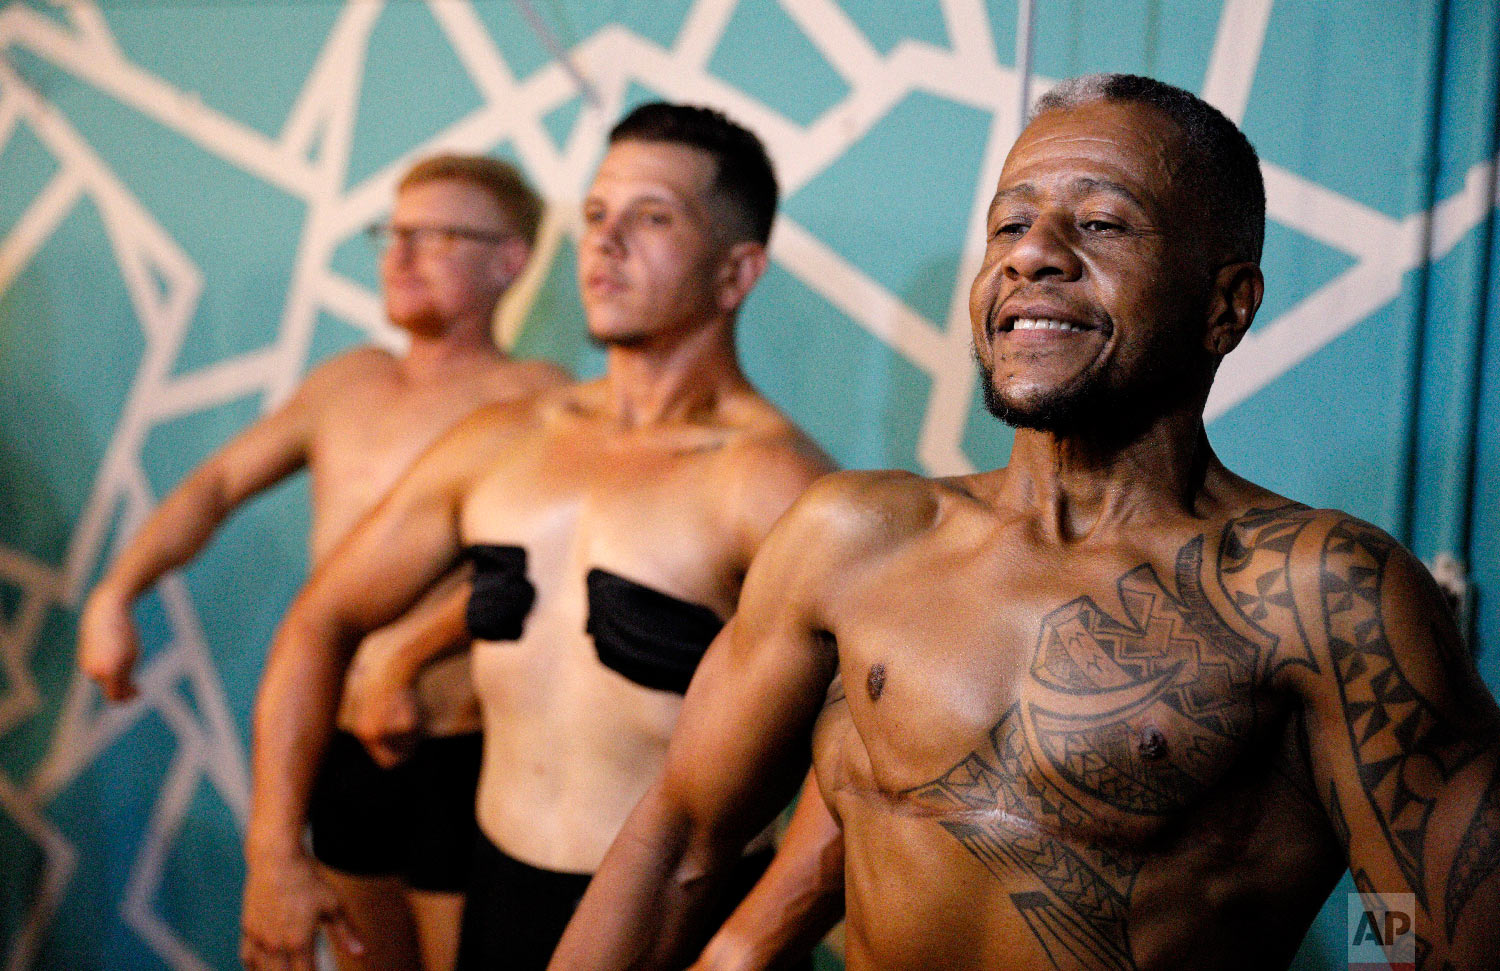 Charles Bennett, from right, of San Francisco, practices a pose in front of a mirror with fellow contestants Devyn Michael Clark, of Jacksonville, Fla., and Peter Moore, of Oakland, Calif., backstage before the start of the International Association of Trans Bodybuilders competition in Atlanta, Oct. 6, 2018. (AP Photo/David Goldman)